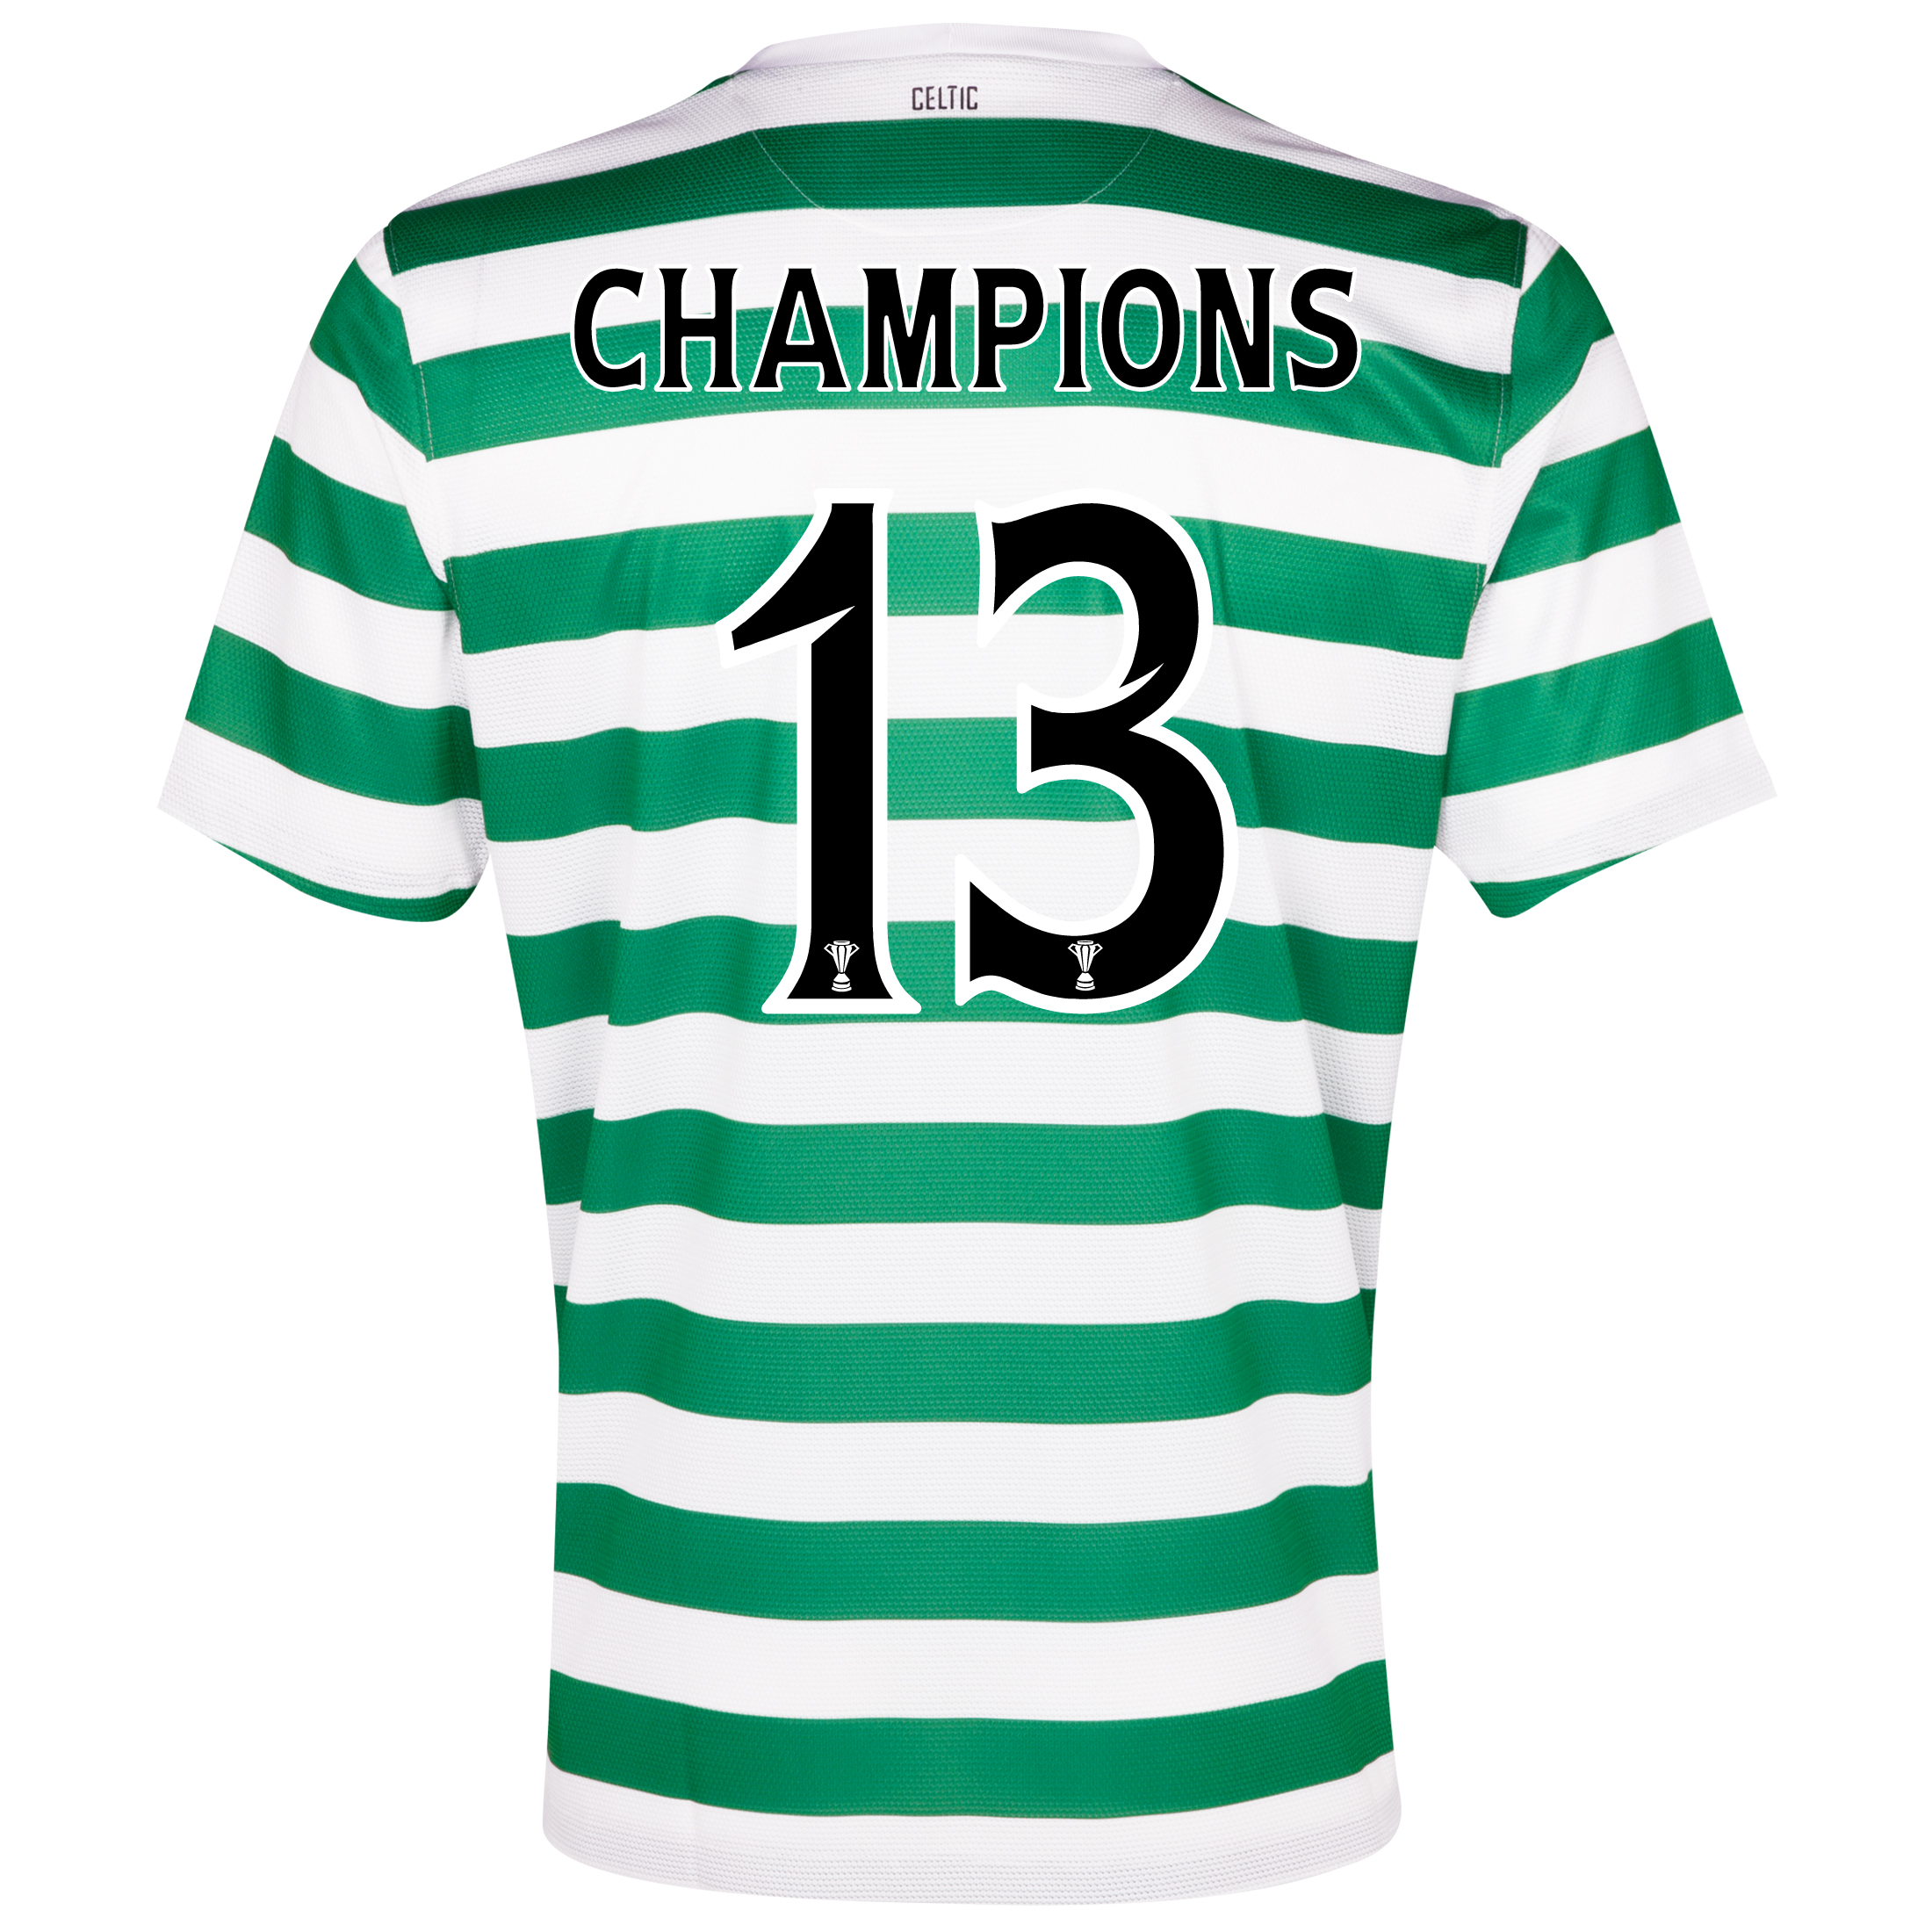 Celtic Home Shirt 2012/13 -  Youths with Champions 13 printing